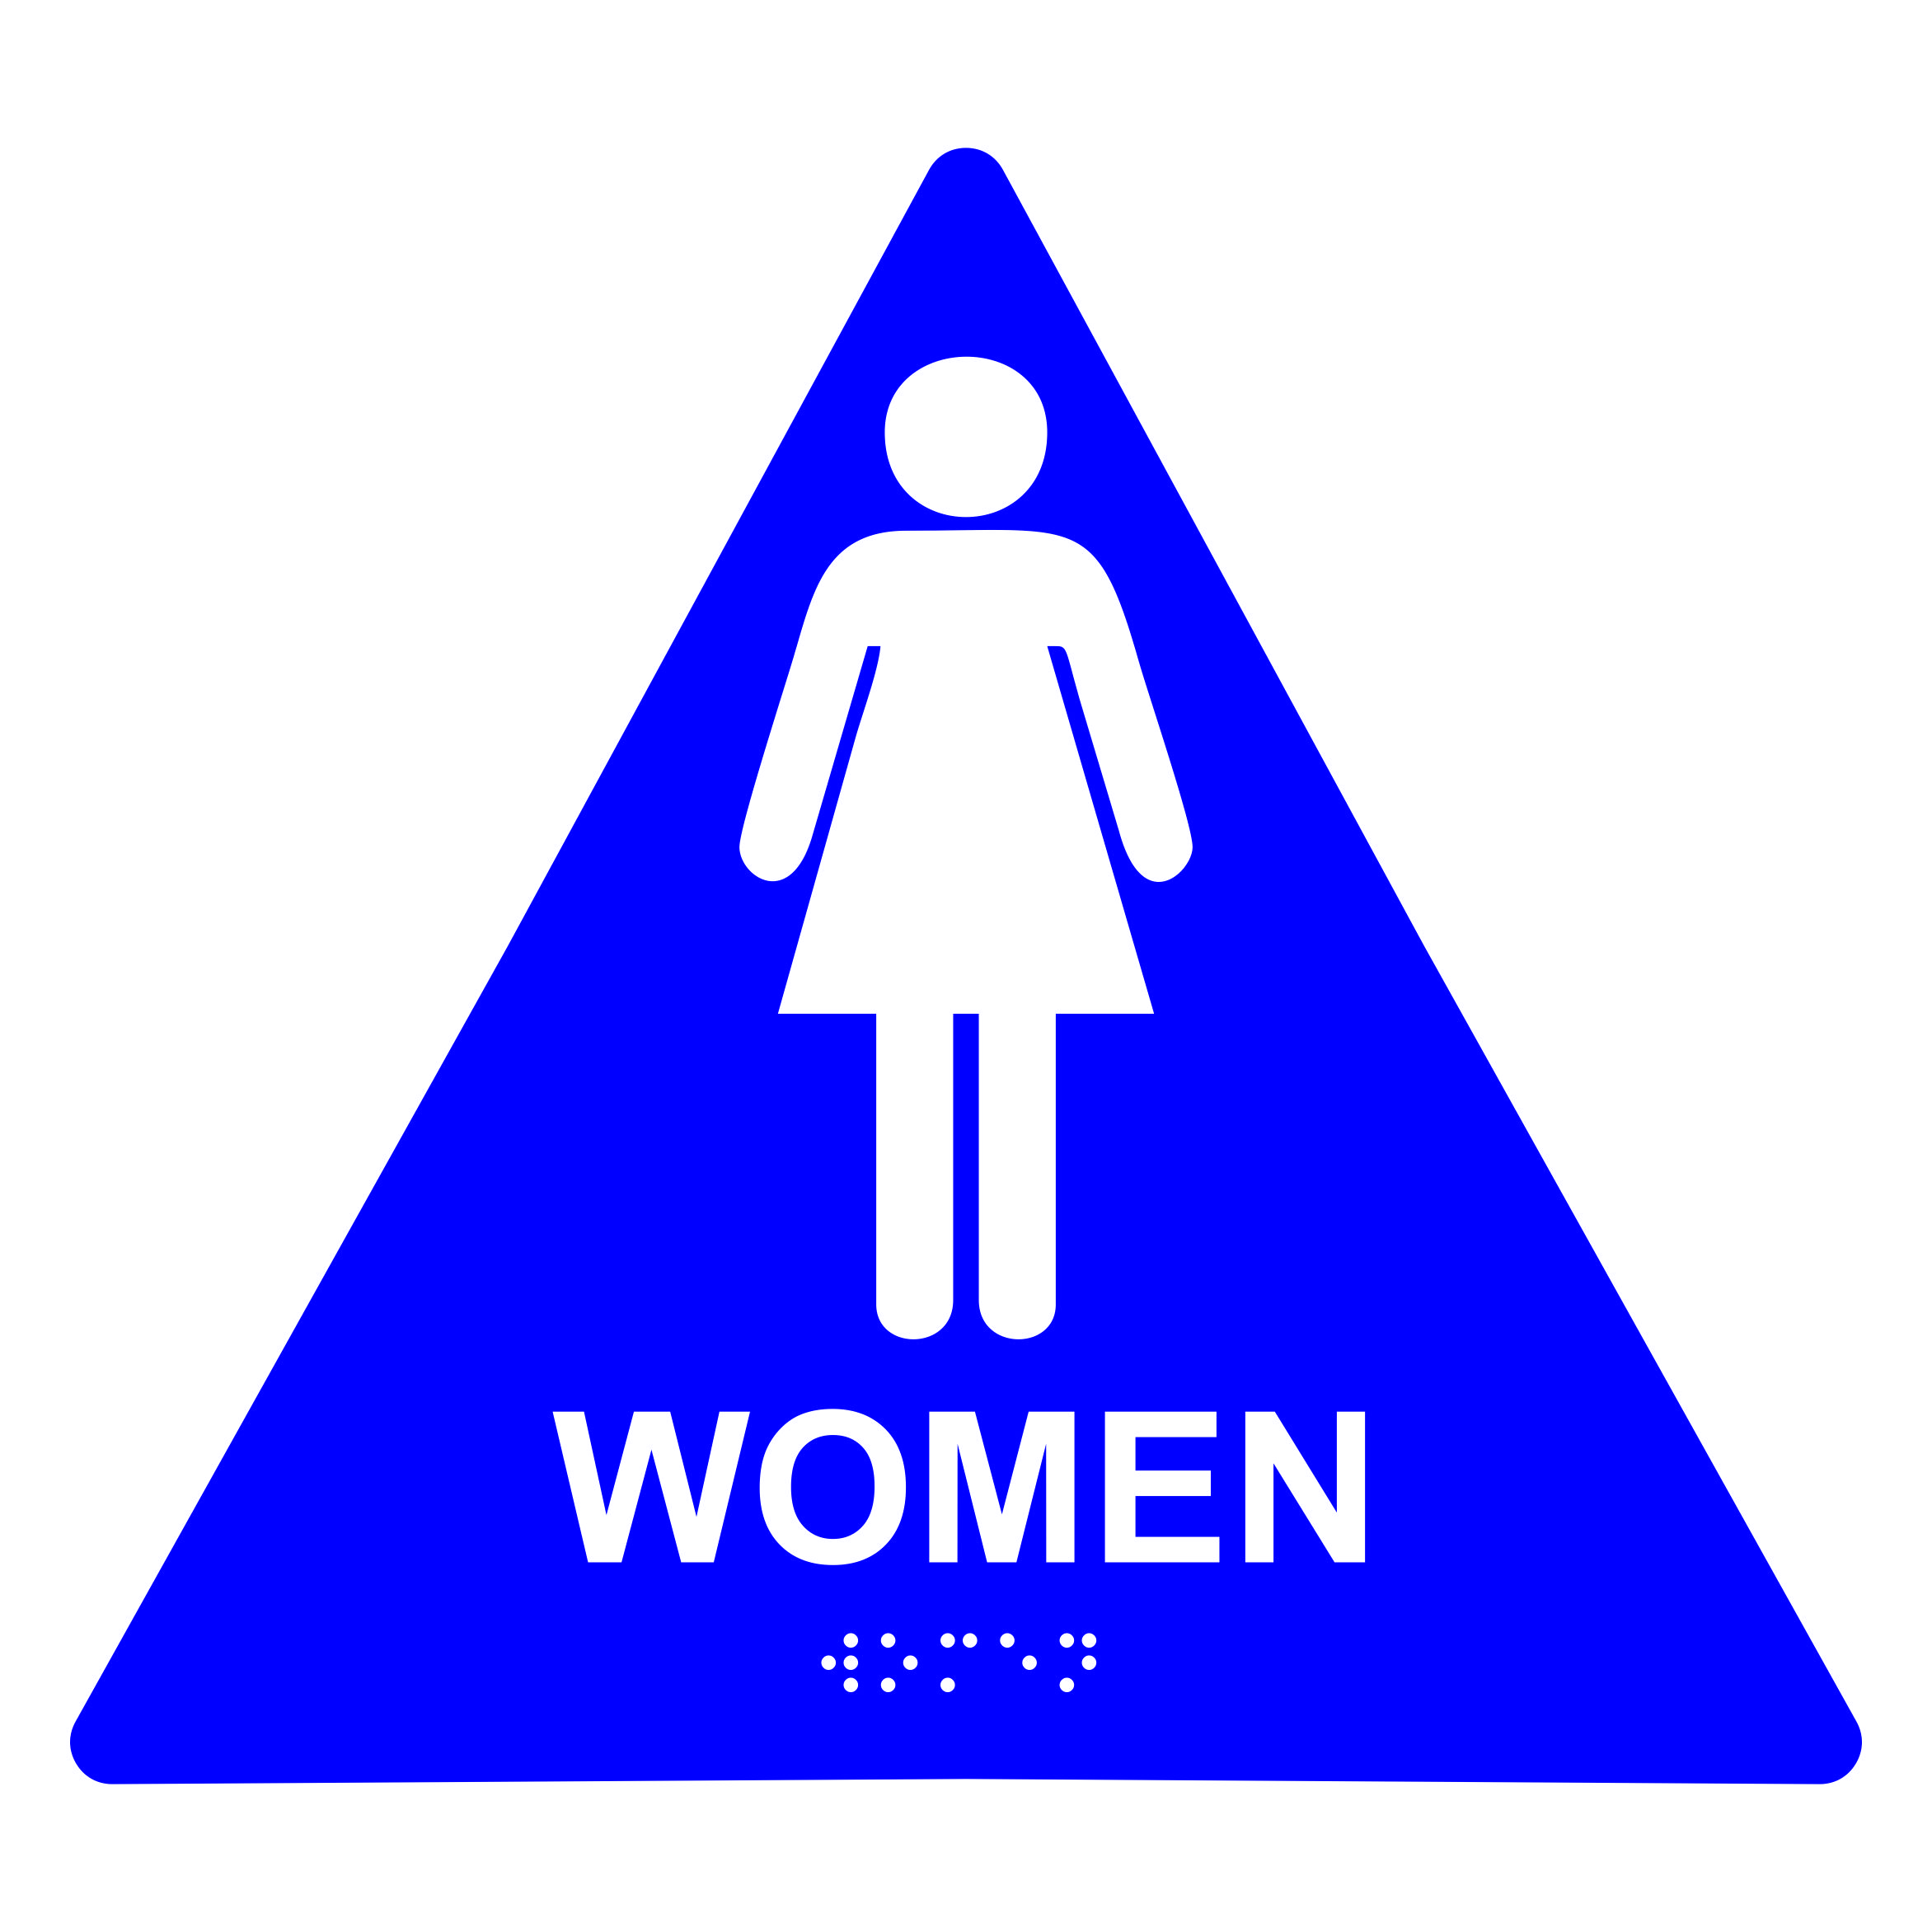 Women Restroom Triangle Economy Ada Signs With Braille Winmark